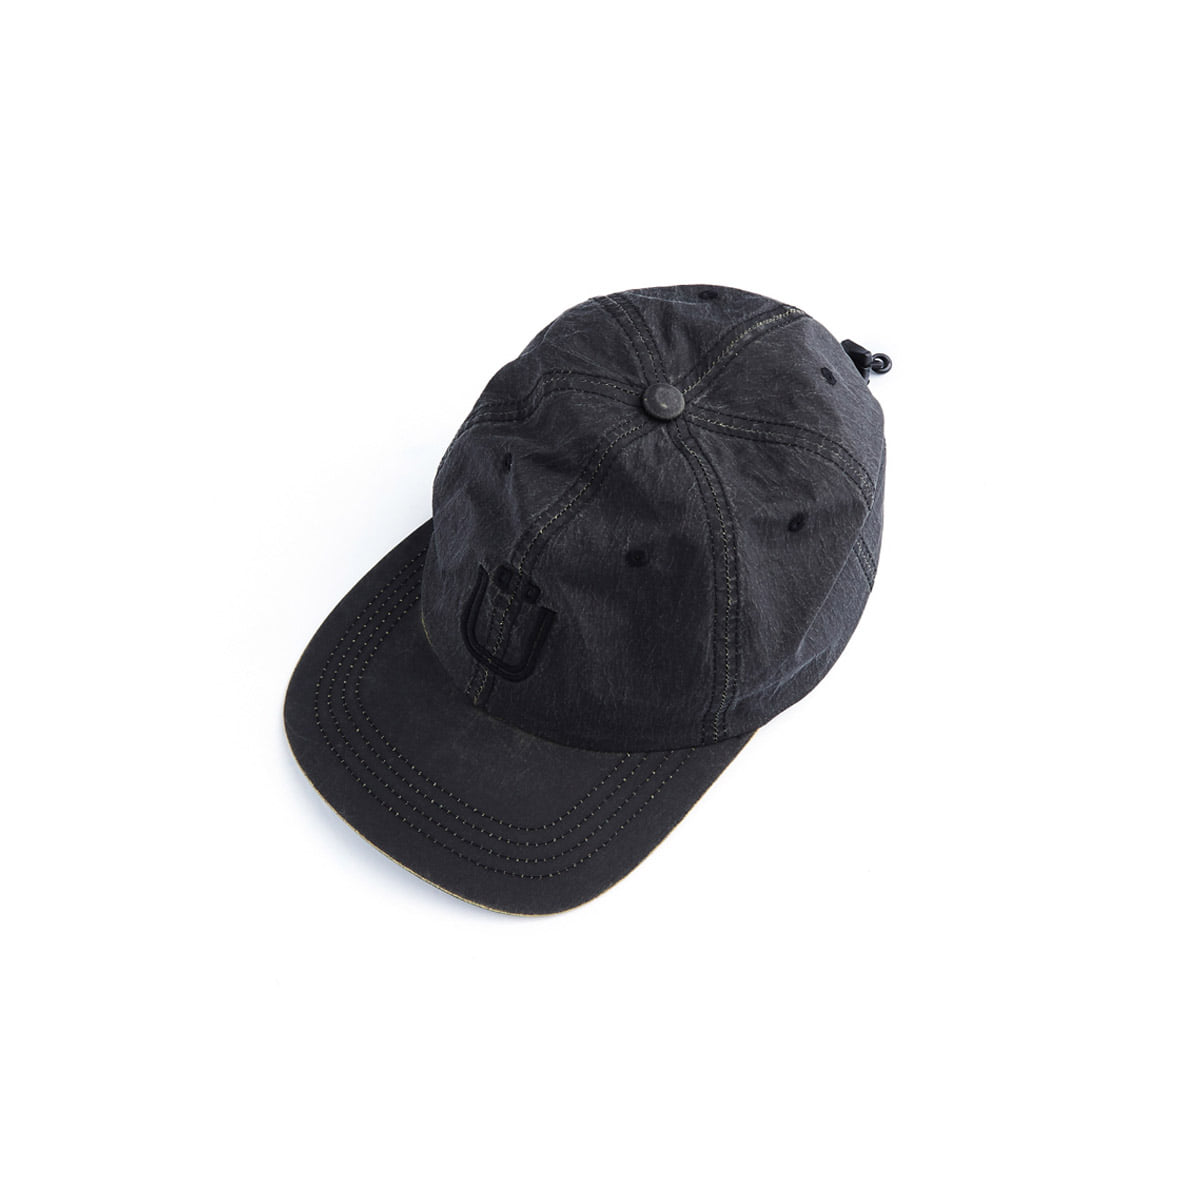 [UNAFFECTED] DRAWSTRING BALL CAP 'CRACKED BLACK'